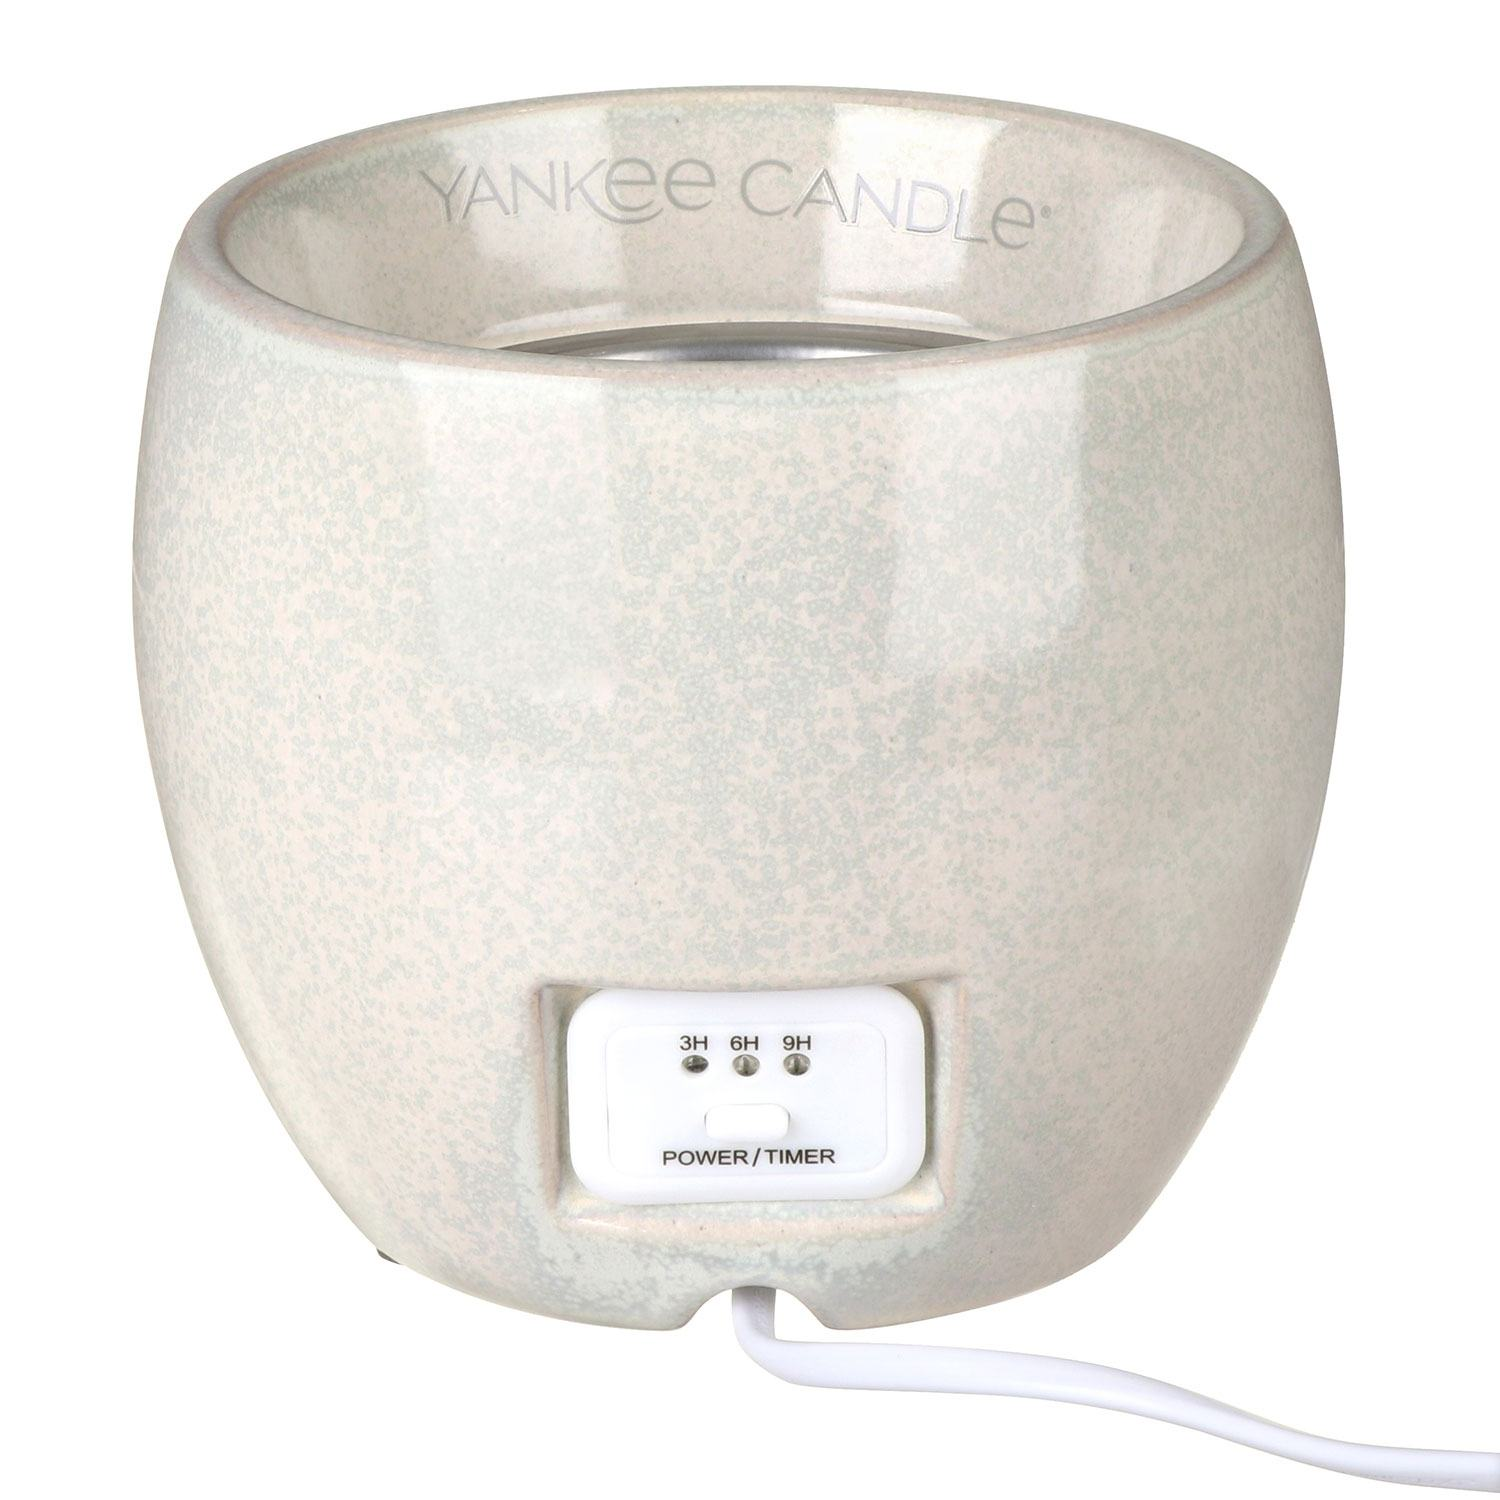 Yankee Candle Addison Scenterpiece™ Easy MeltCup Warmer - With Timer